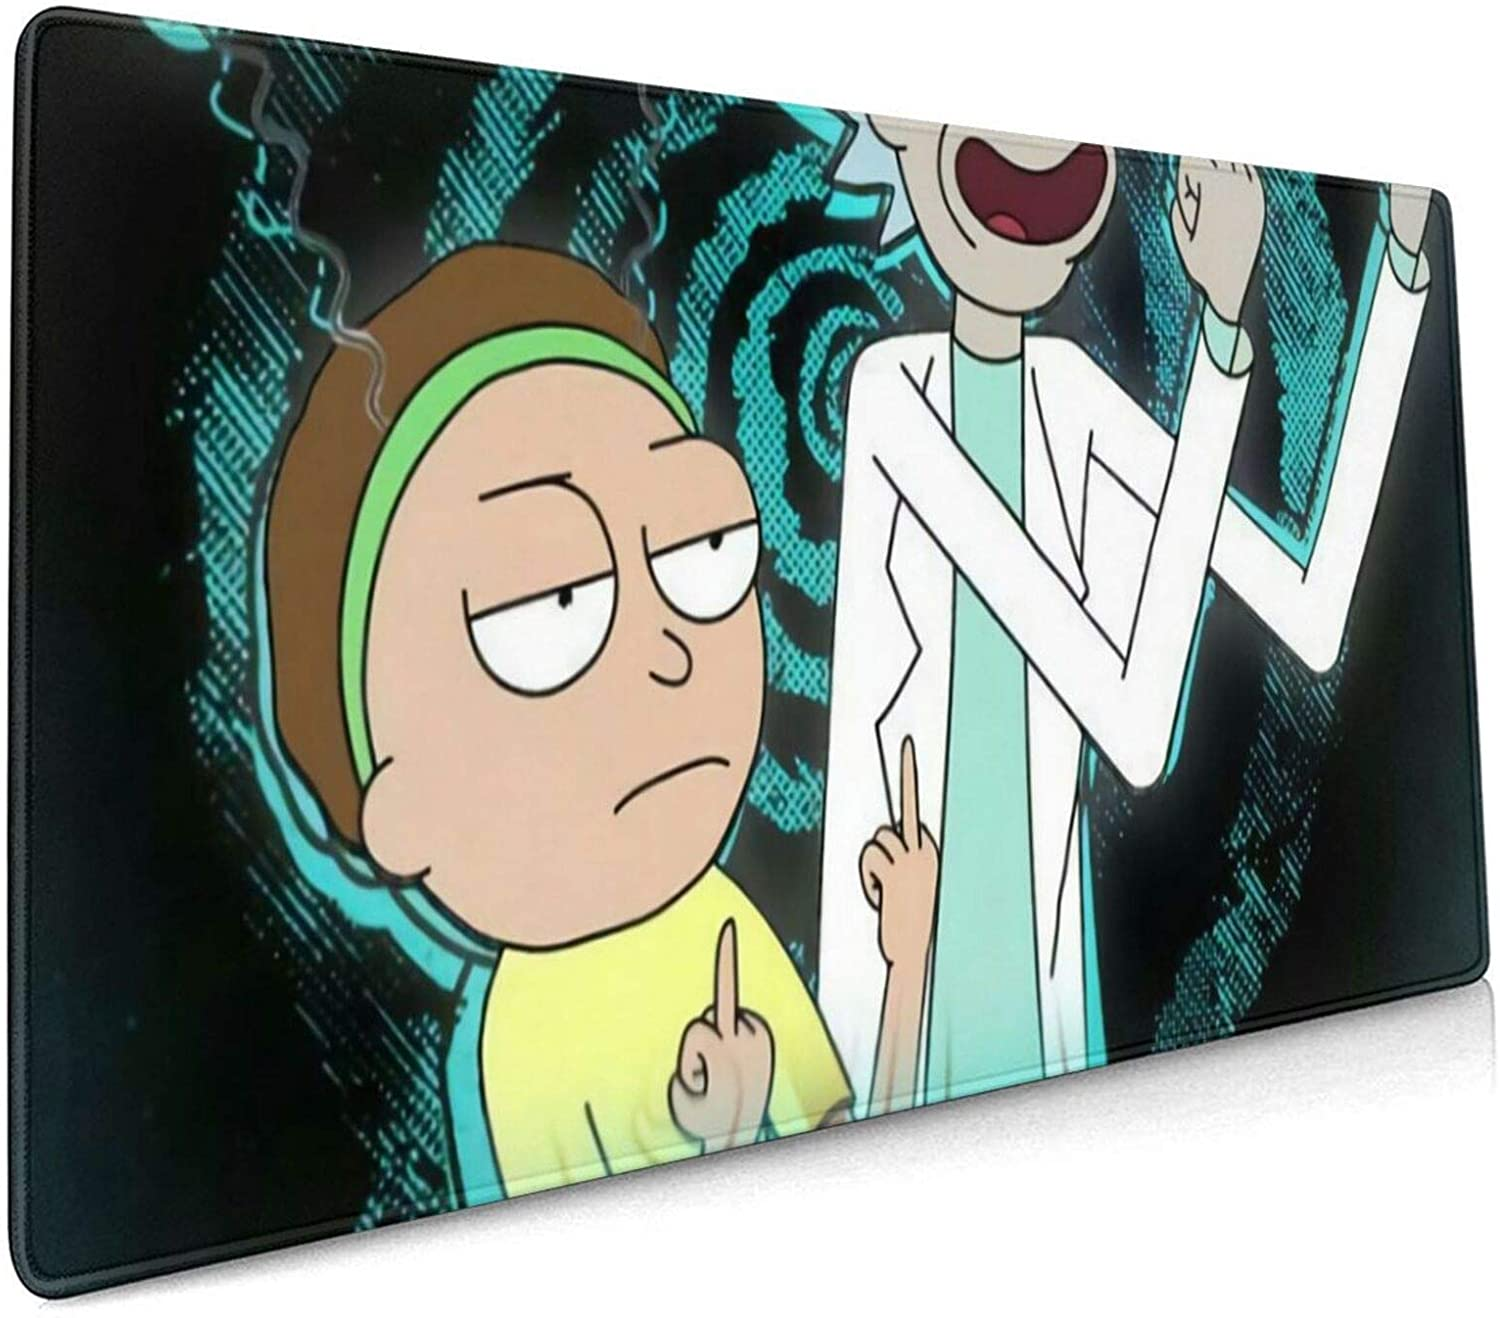 Rick and Morty Peace Among Worlds Large Gaming Mouse Pad Desk Mat Long Non-Slip Rubber Stitched Edges Mice Pads